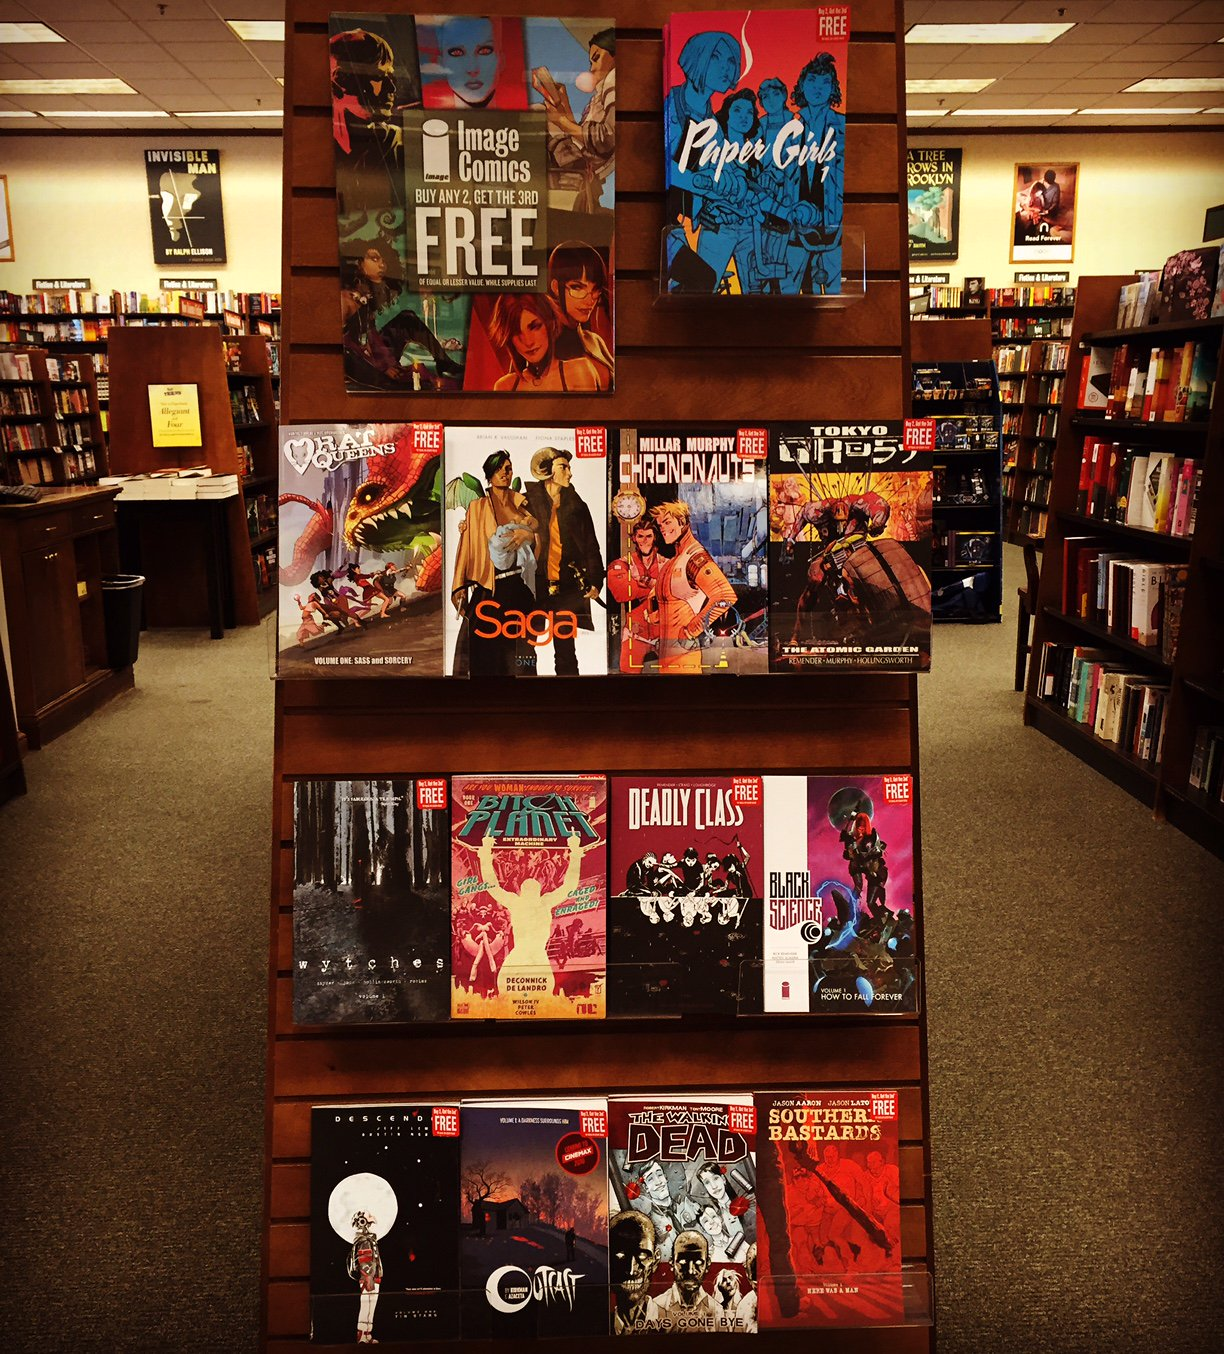 Right now all @ImageComics are buy 2 get the 3rd FREE! Come check out the best new comics on the planet! #bnsandiego https://t.co/akry0TjDHl